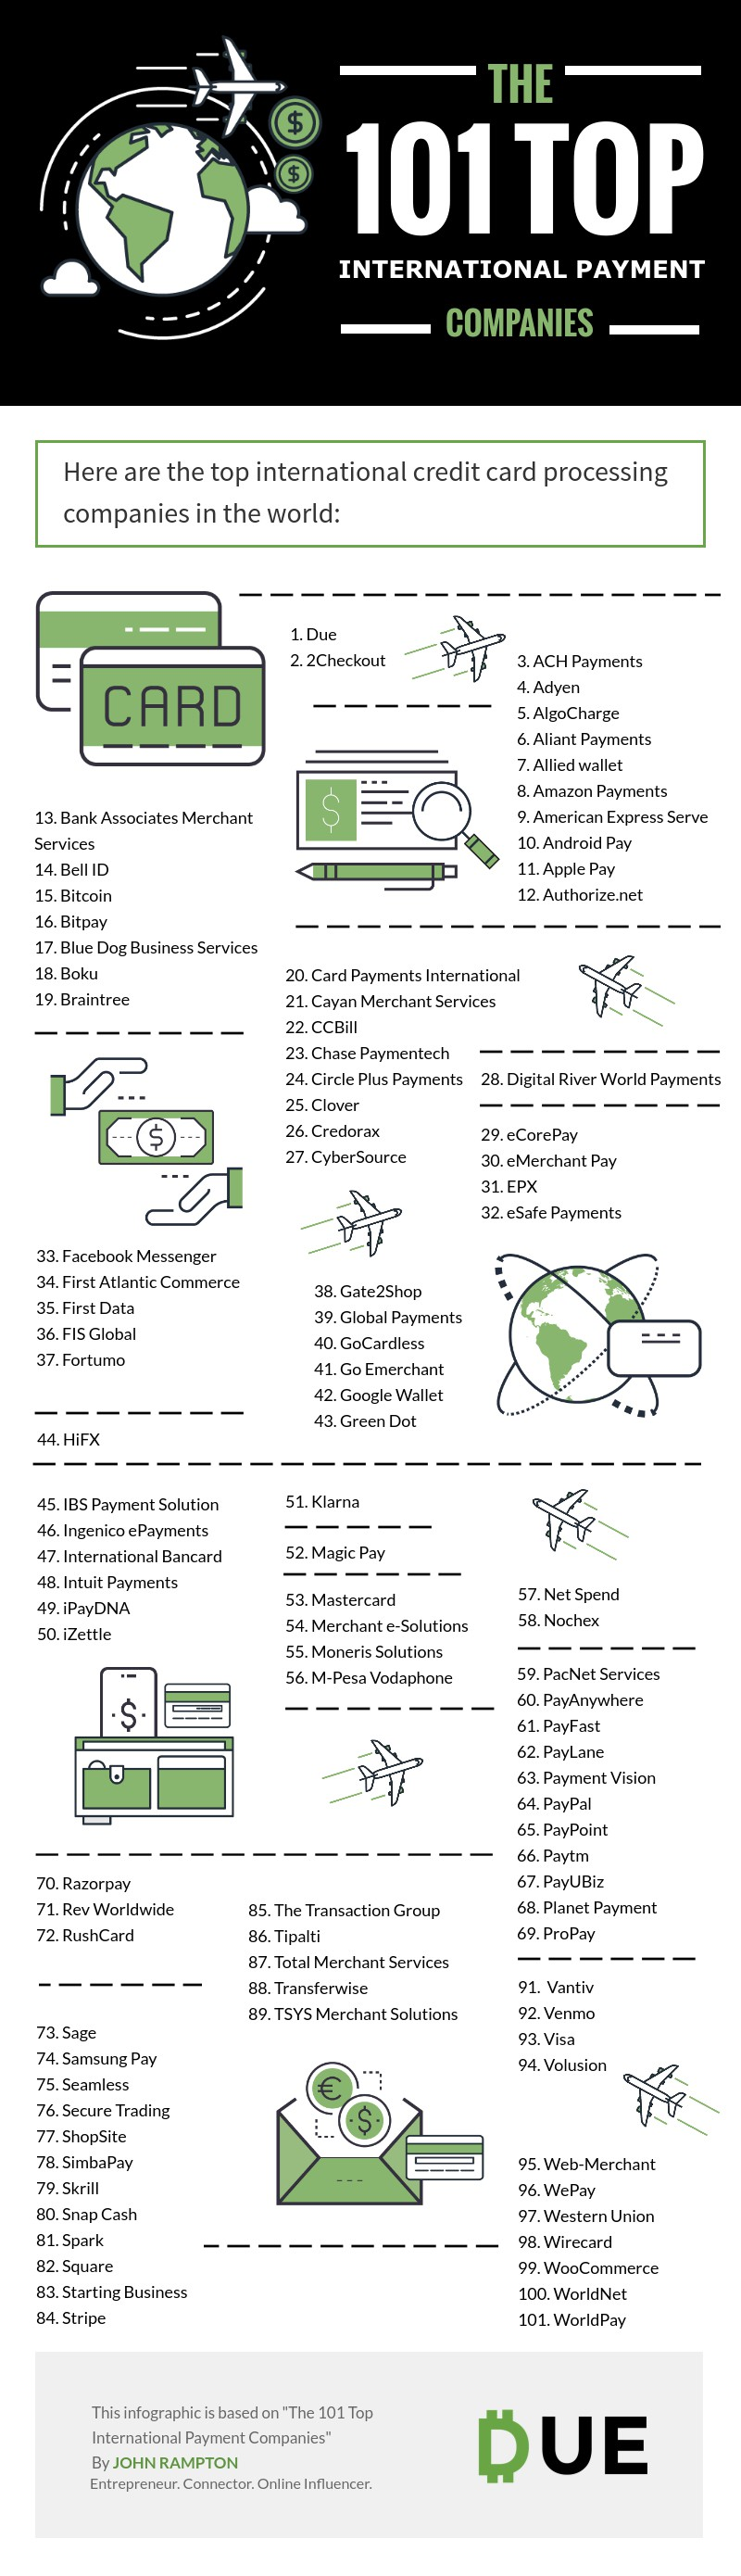 The 101 Top International Payment Companies [Infographic]